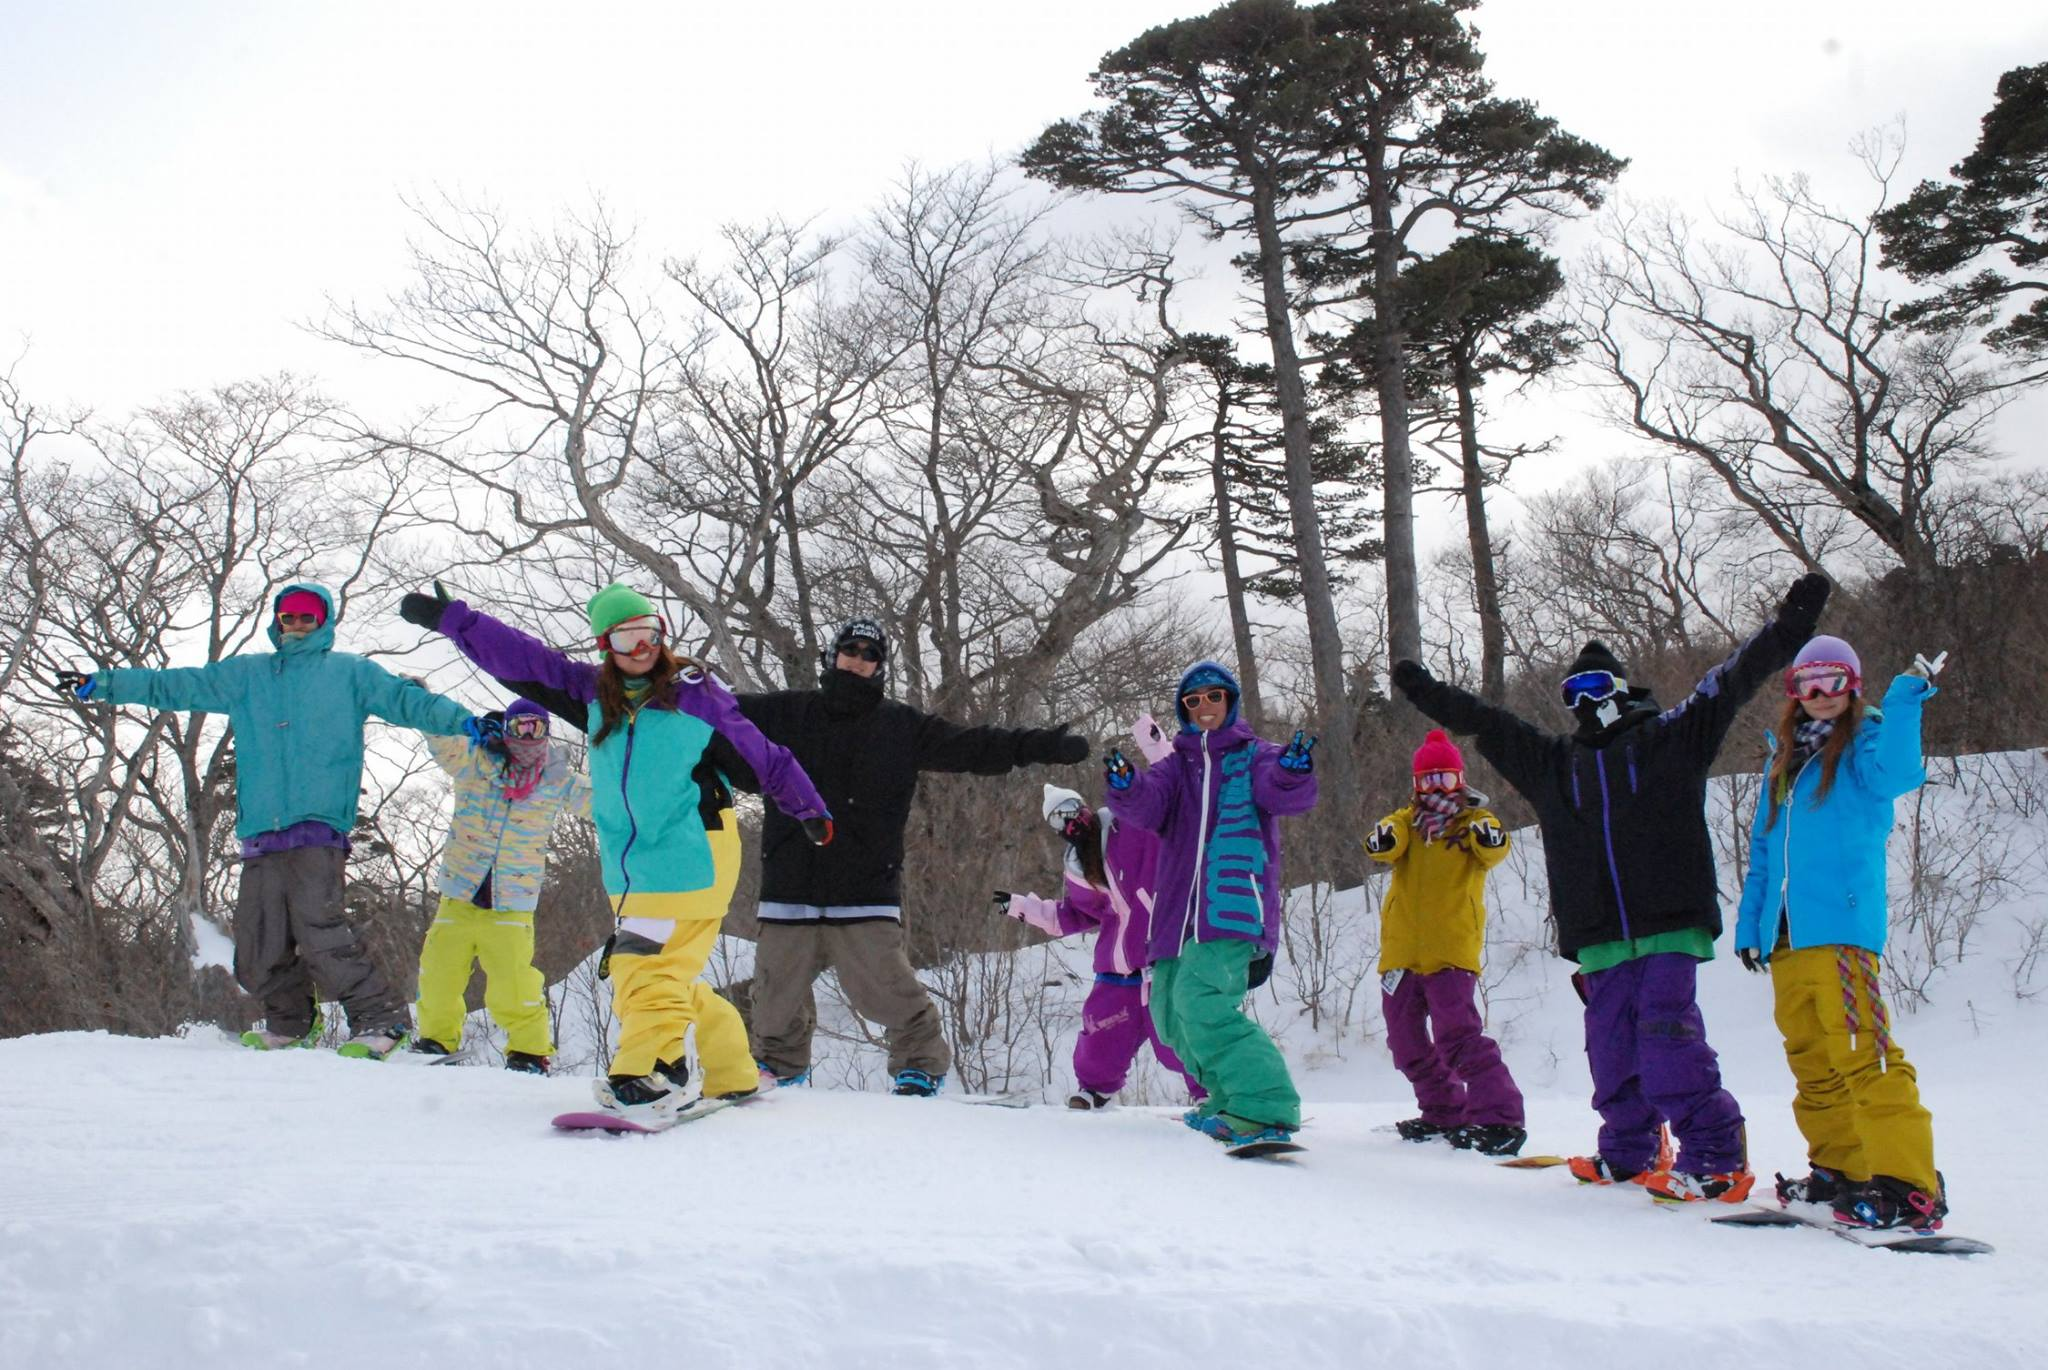 Winter sports 4.3km course is popular! Enjoy Zao's nature throughout the year at sports resort, Miyagi Zao Eboshi Resort.